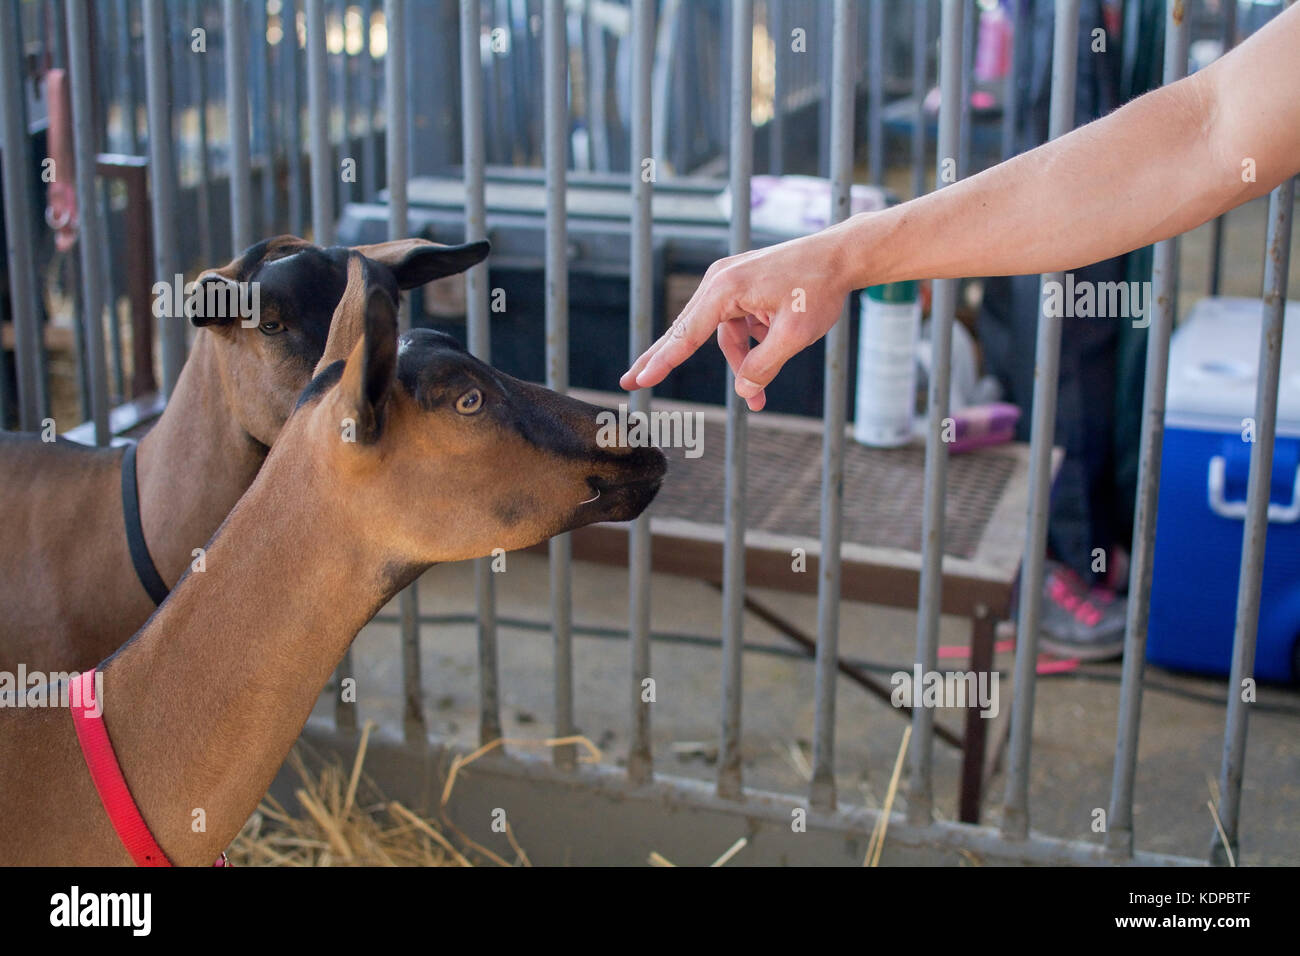 Sacramento, California, U.S.A. 23 July 2017. Hand touching goat on display at the California State Fair at Cal Expo. - Stock Image